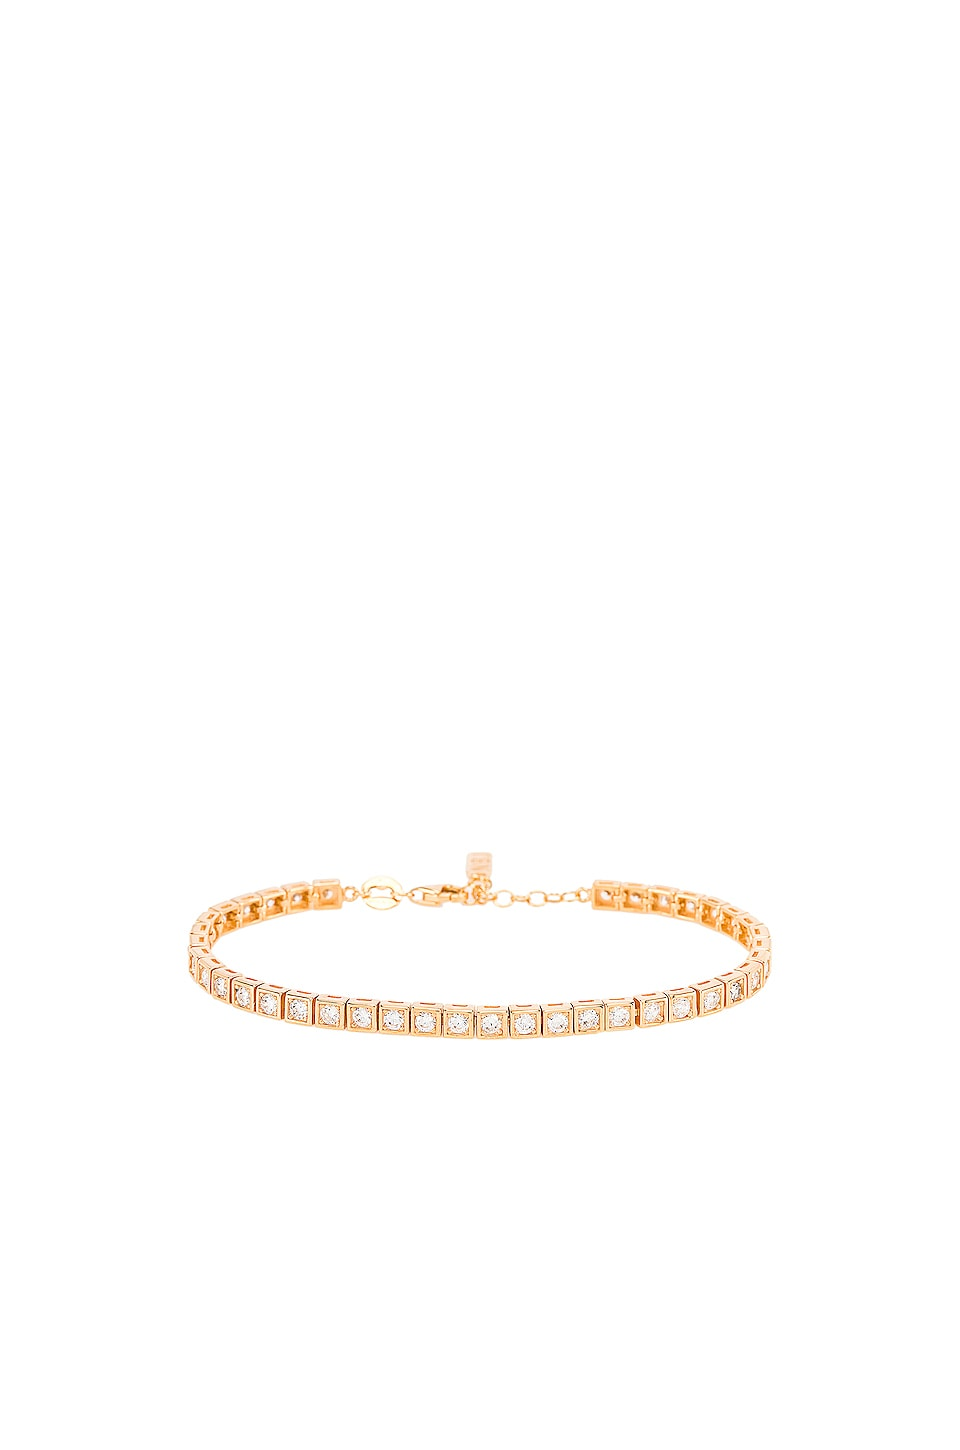 Natalie B Jewelry Le Tennis Bracelet in Gold